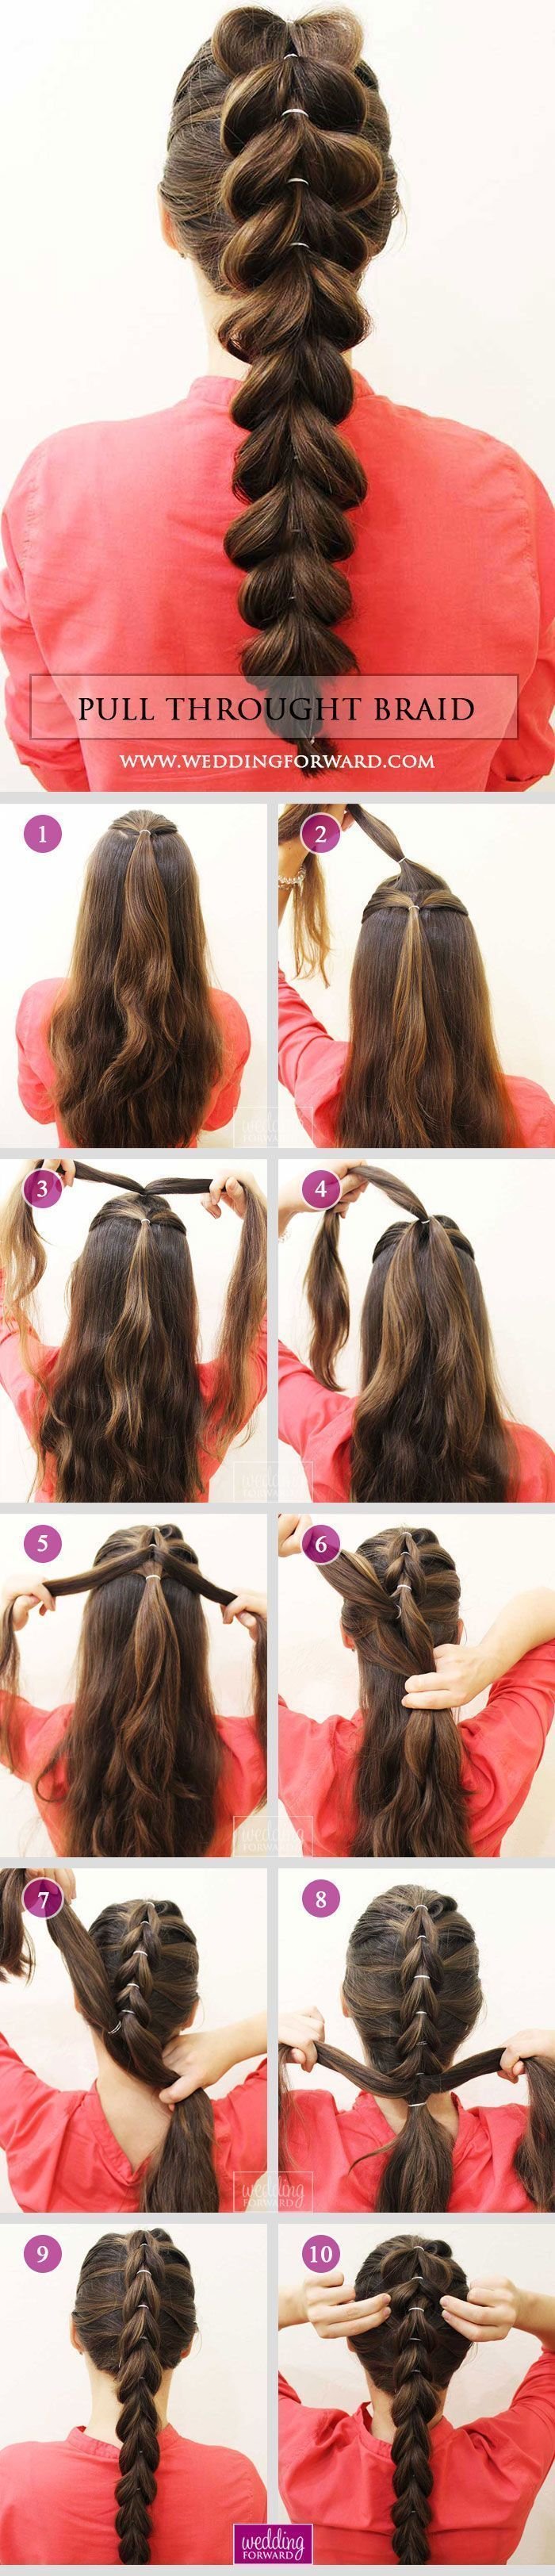 15 Easy to Do Everyday Hairstyle Ideas for Short, Medium & Long Hairs – Adney Jaffer